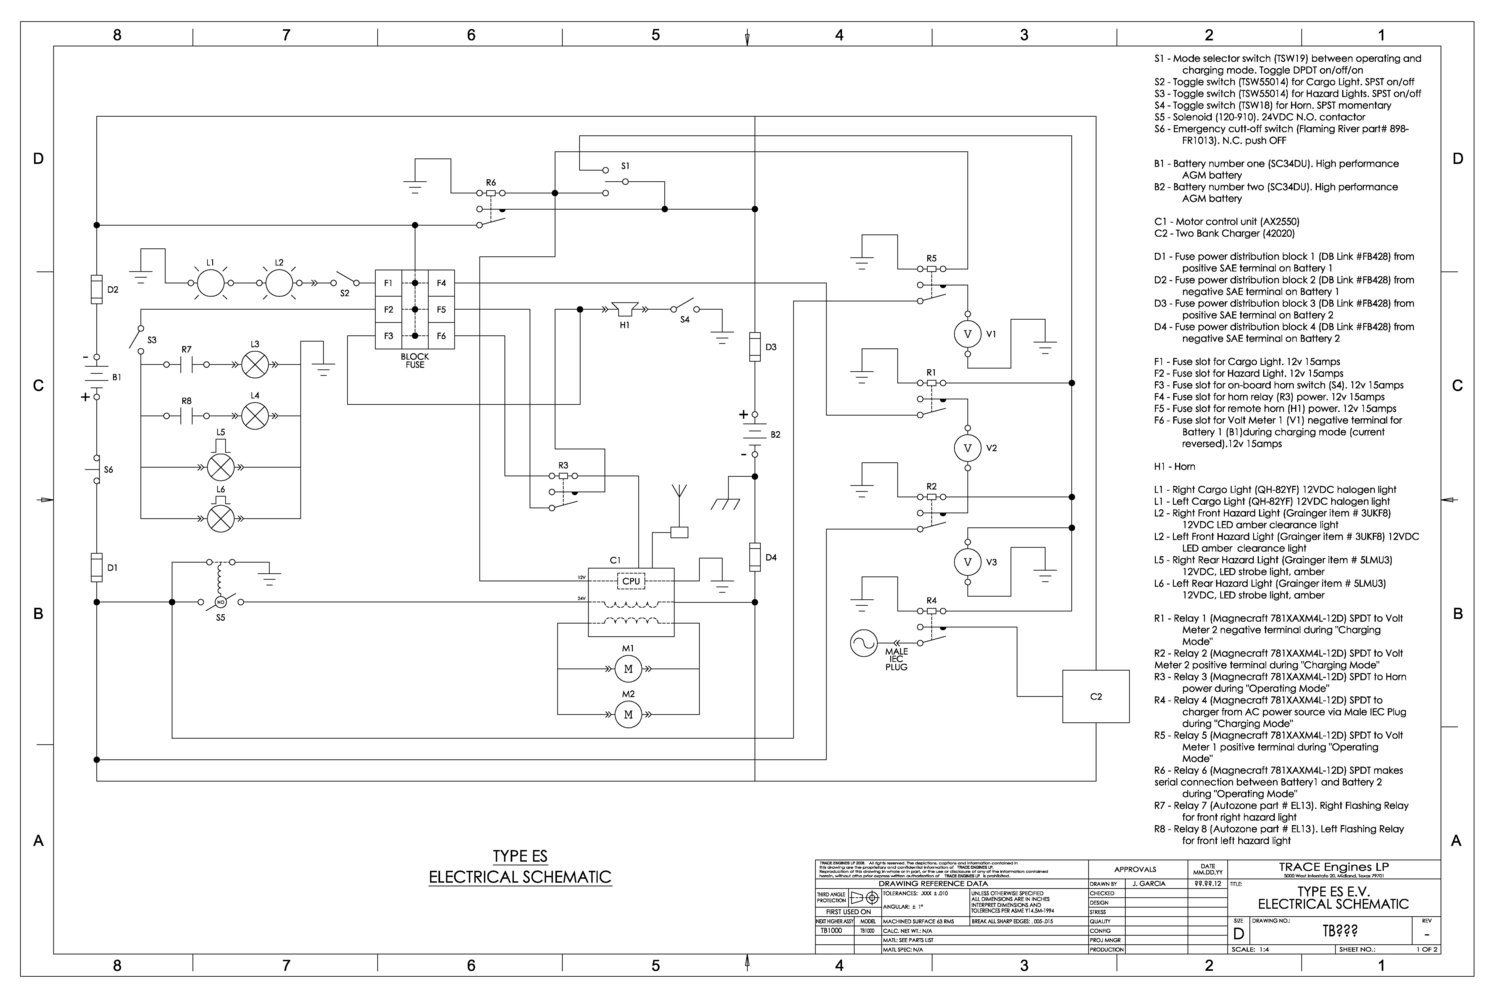 Beautiful Pyf14a Relay Base Wiring Diagram Photos - Electrical and on electric motor wire hookup diagrams, grainger motor finder, ao smith motor diagrams, grainger motor cross reference, reversible electric motor diagrams, single phase capacitor motor diagrams, motor connections diagrams,